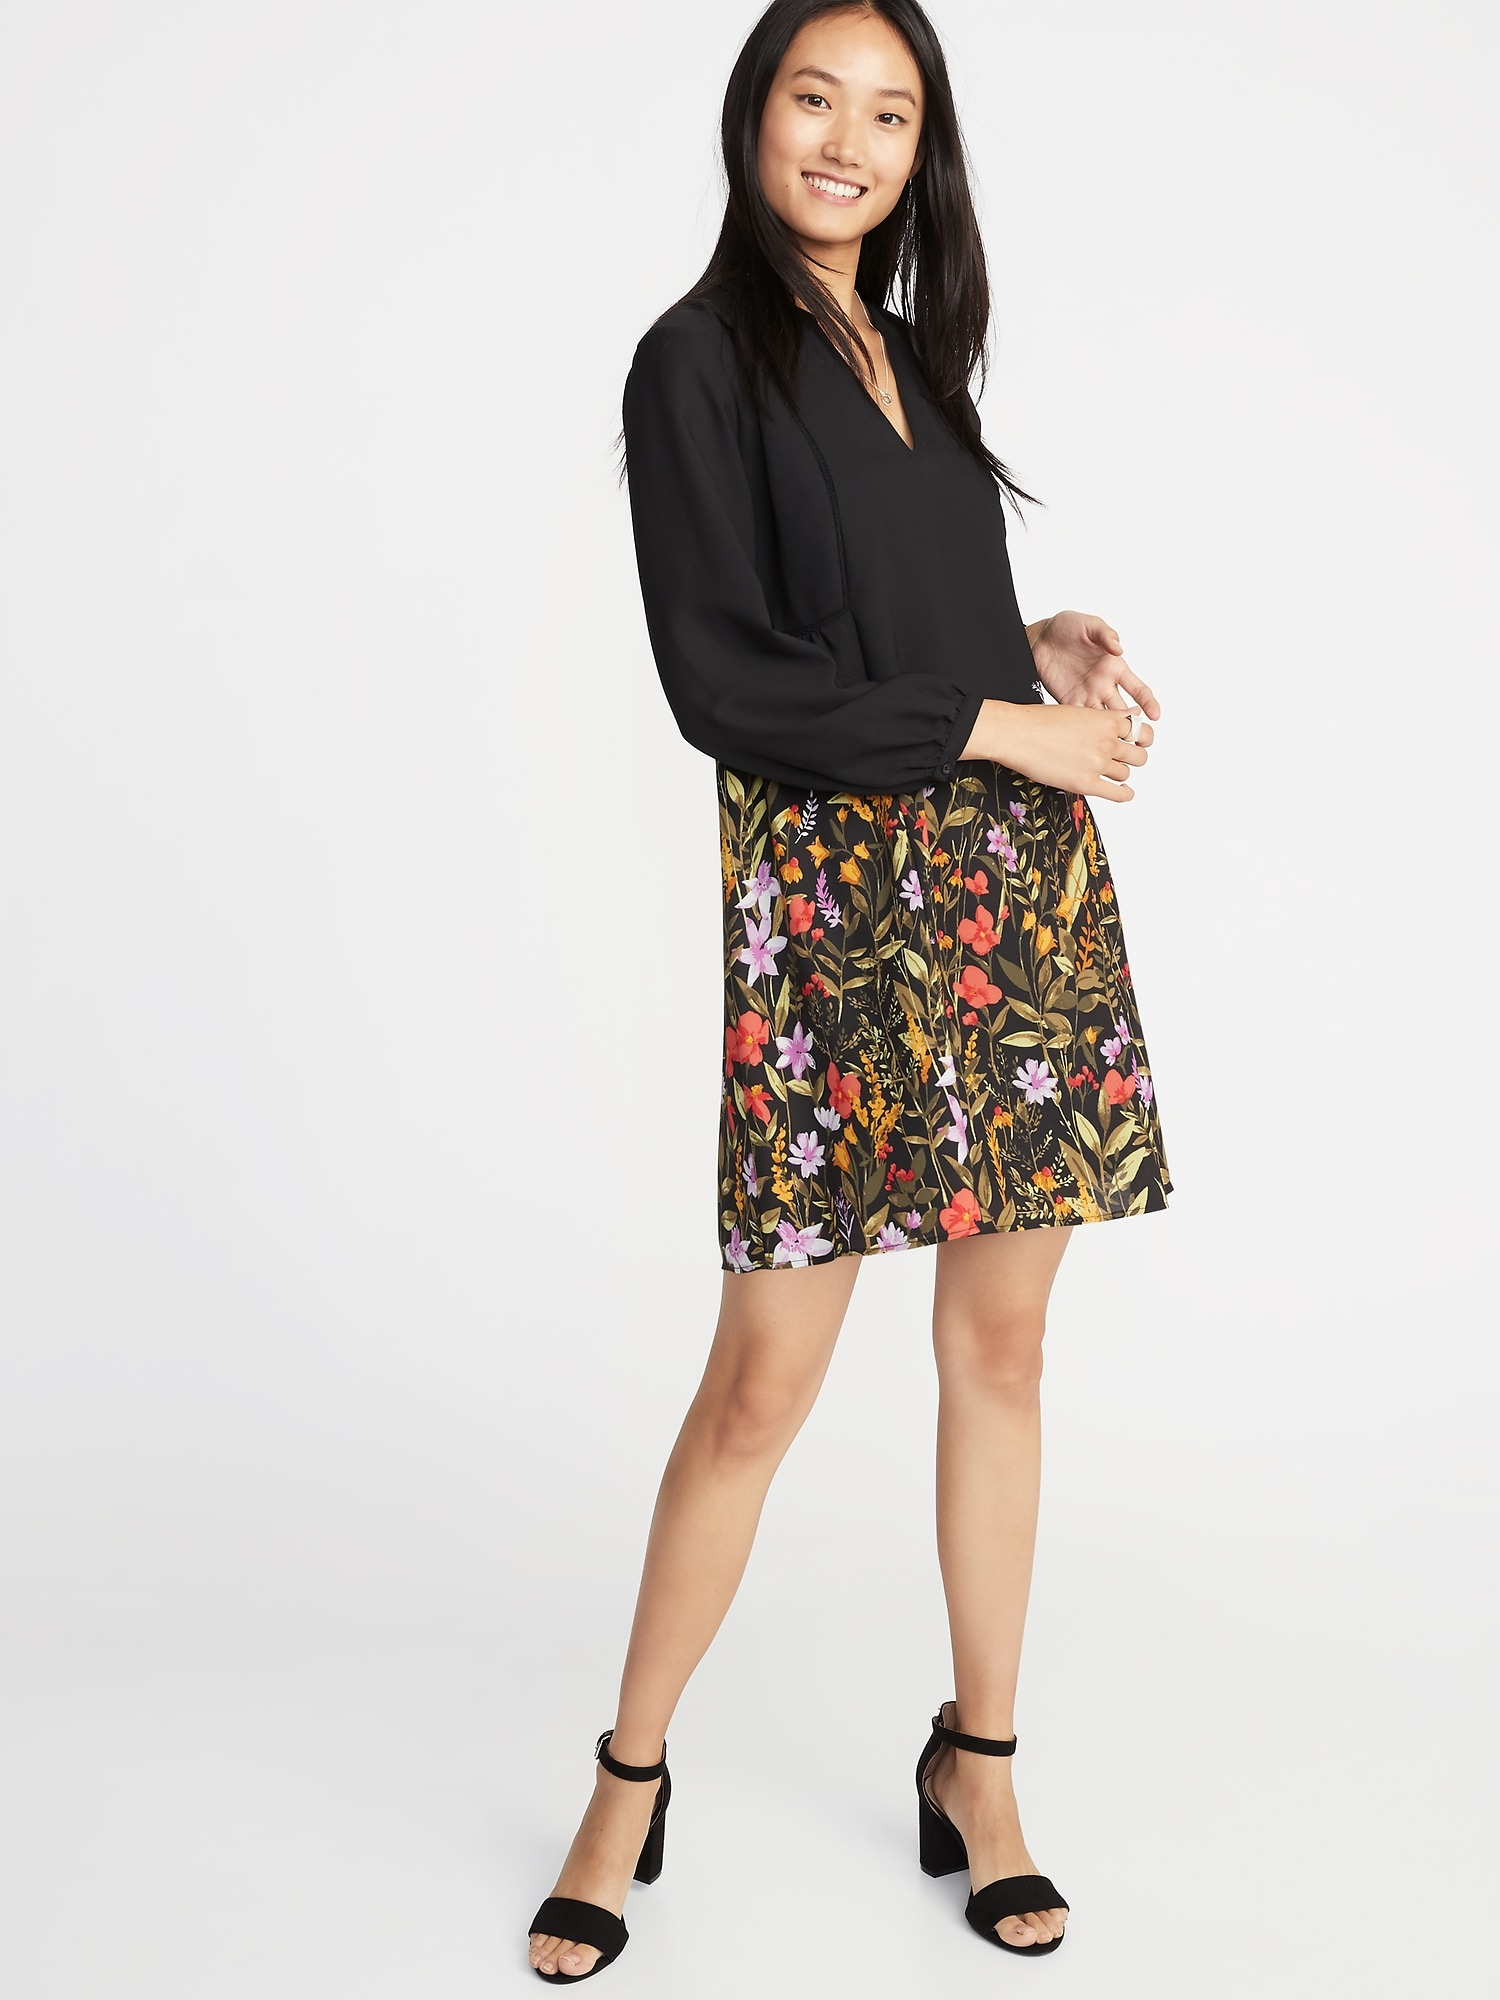 Floral Print Georgette Swing Dress For Women Old Navy Sabrina Sleeves